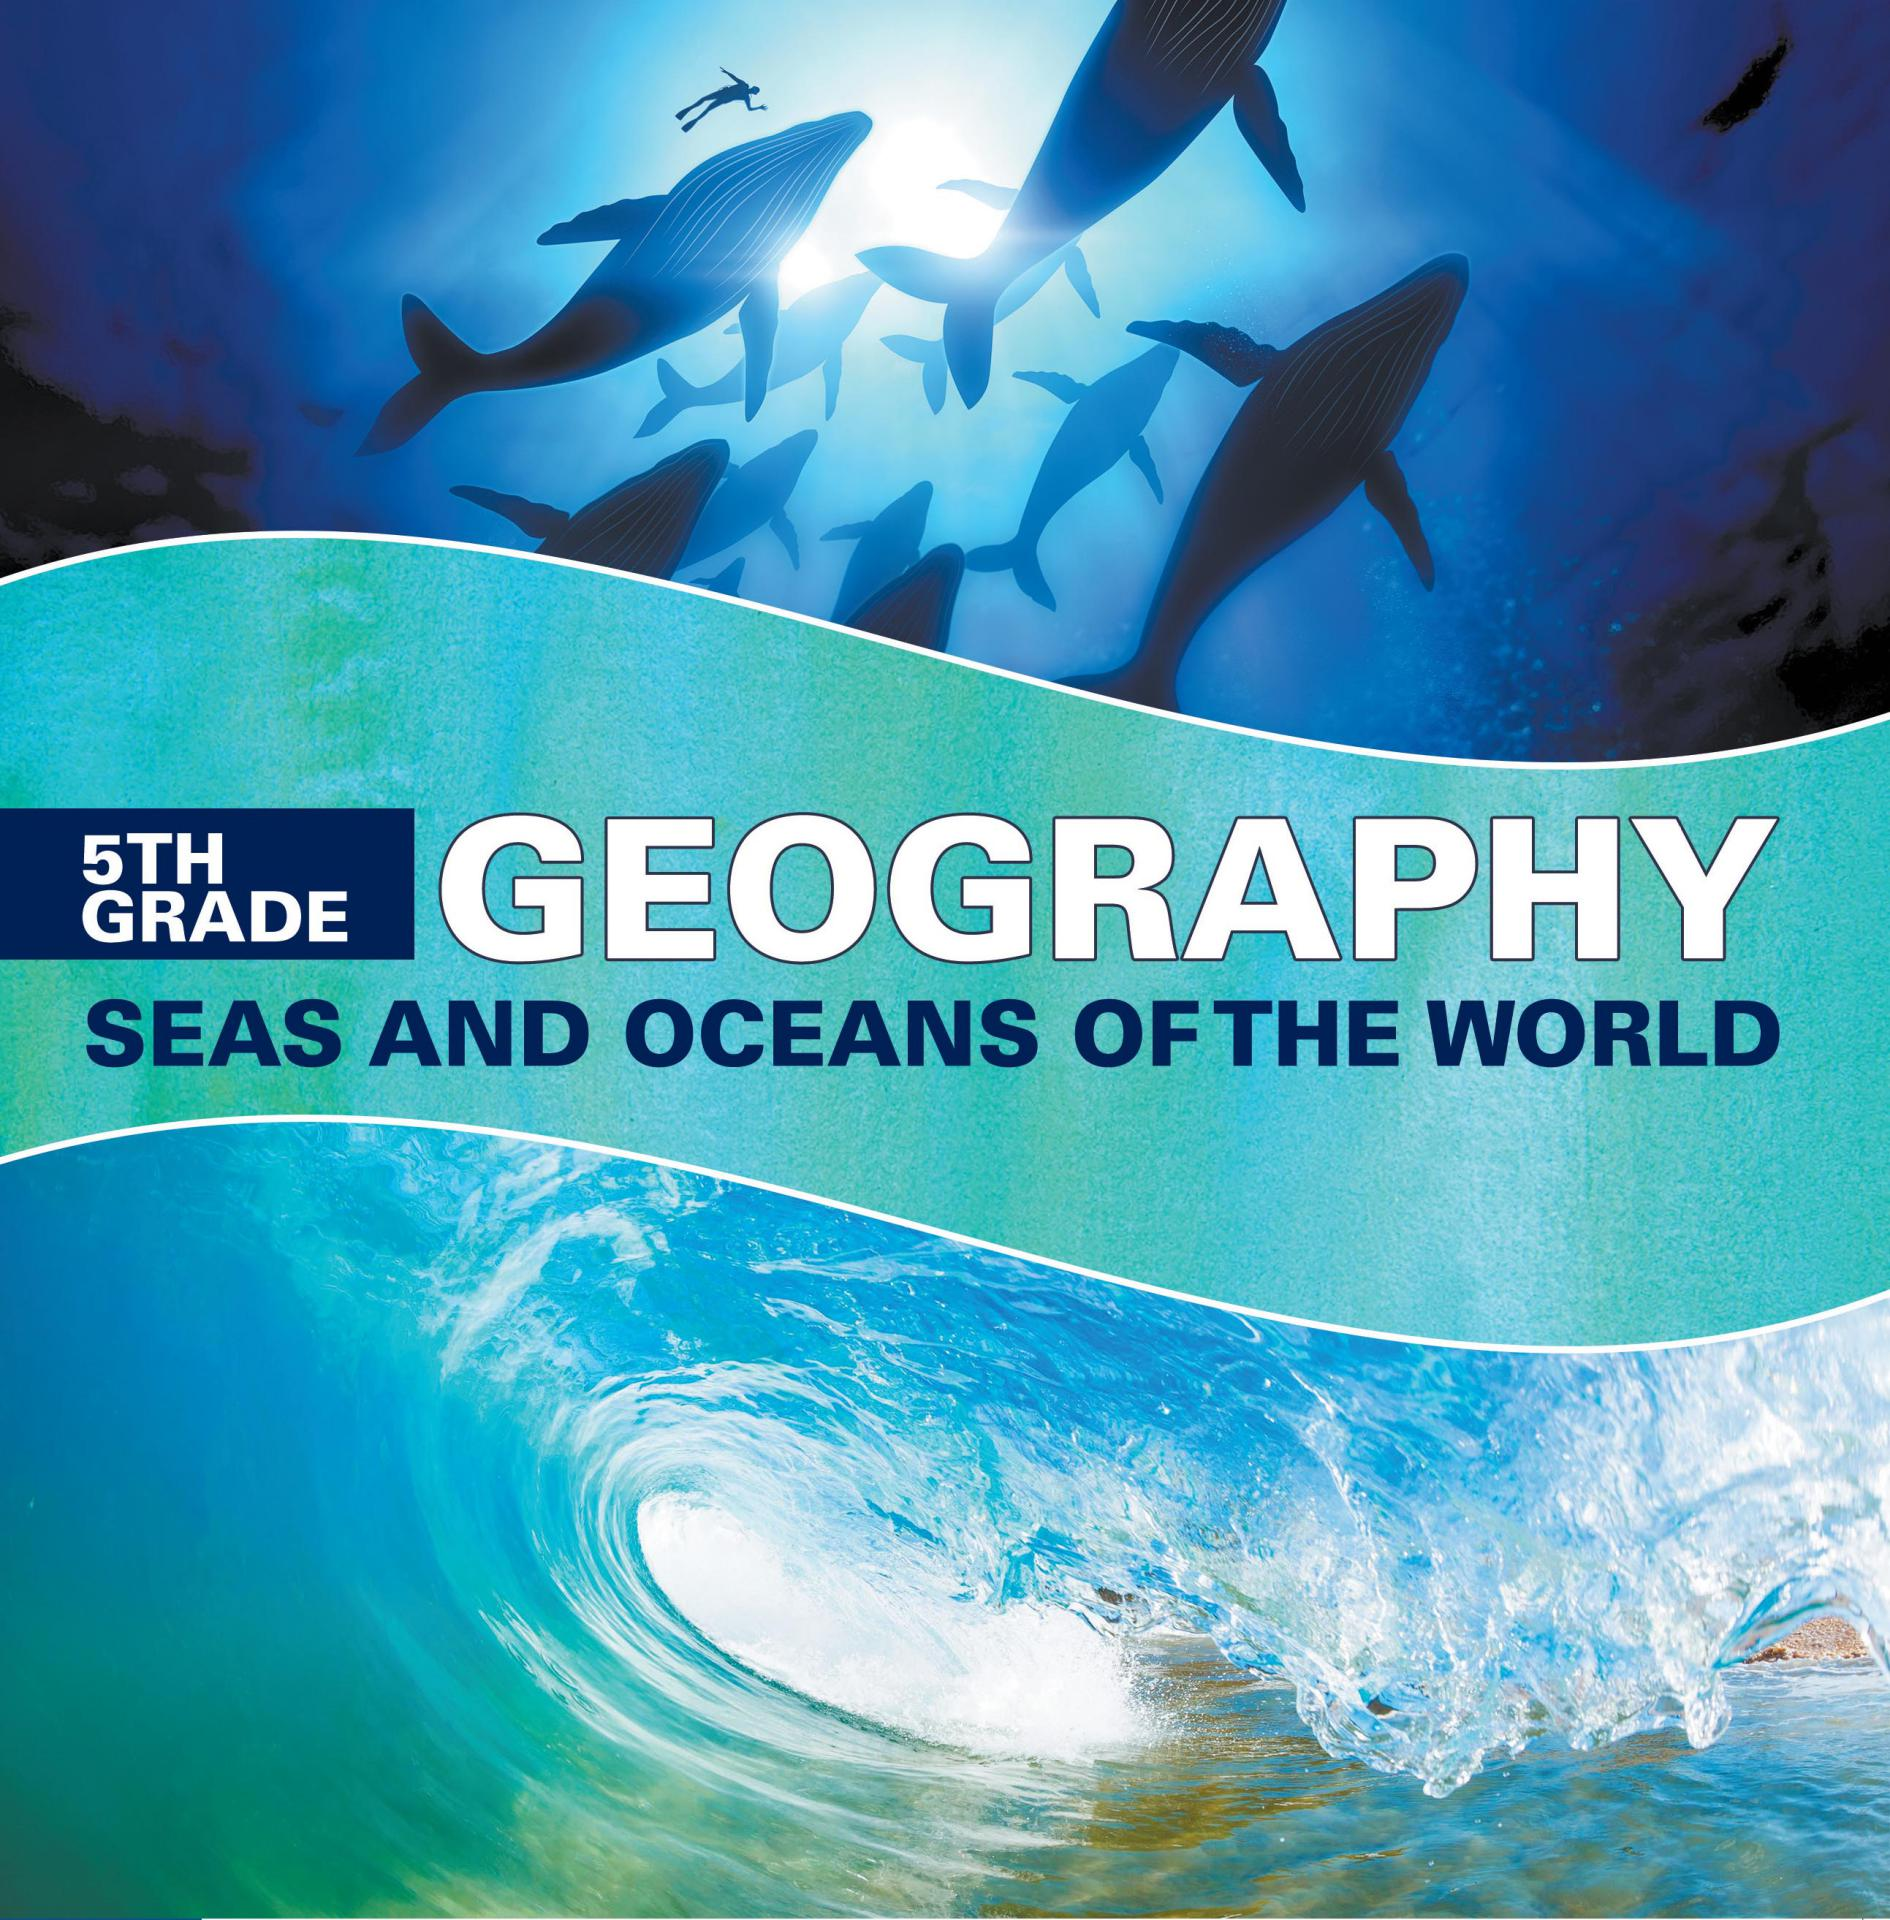 5th Grade Geography: Seas and Oceans of the World Fifth Grade Books Marine Life and Oceanography for Kids